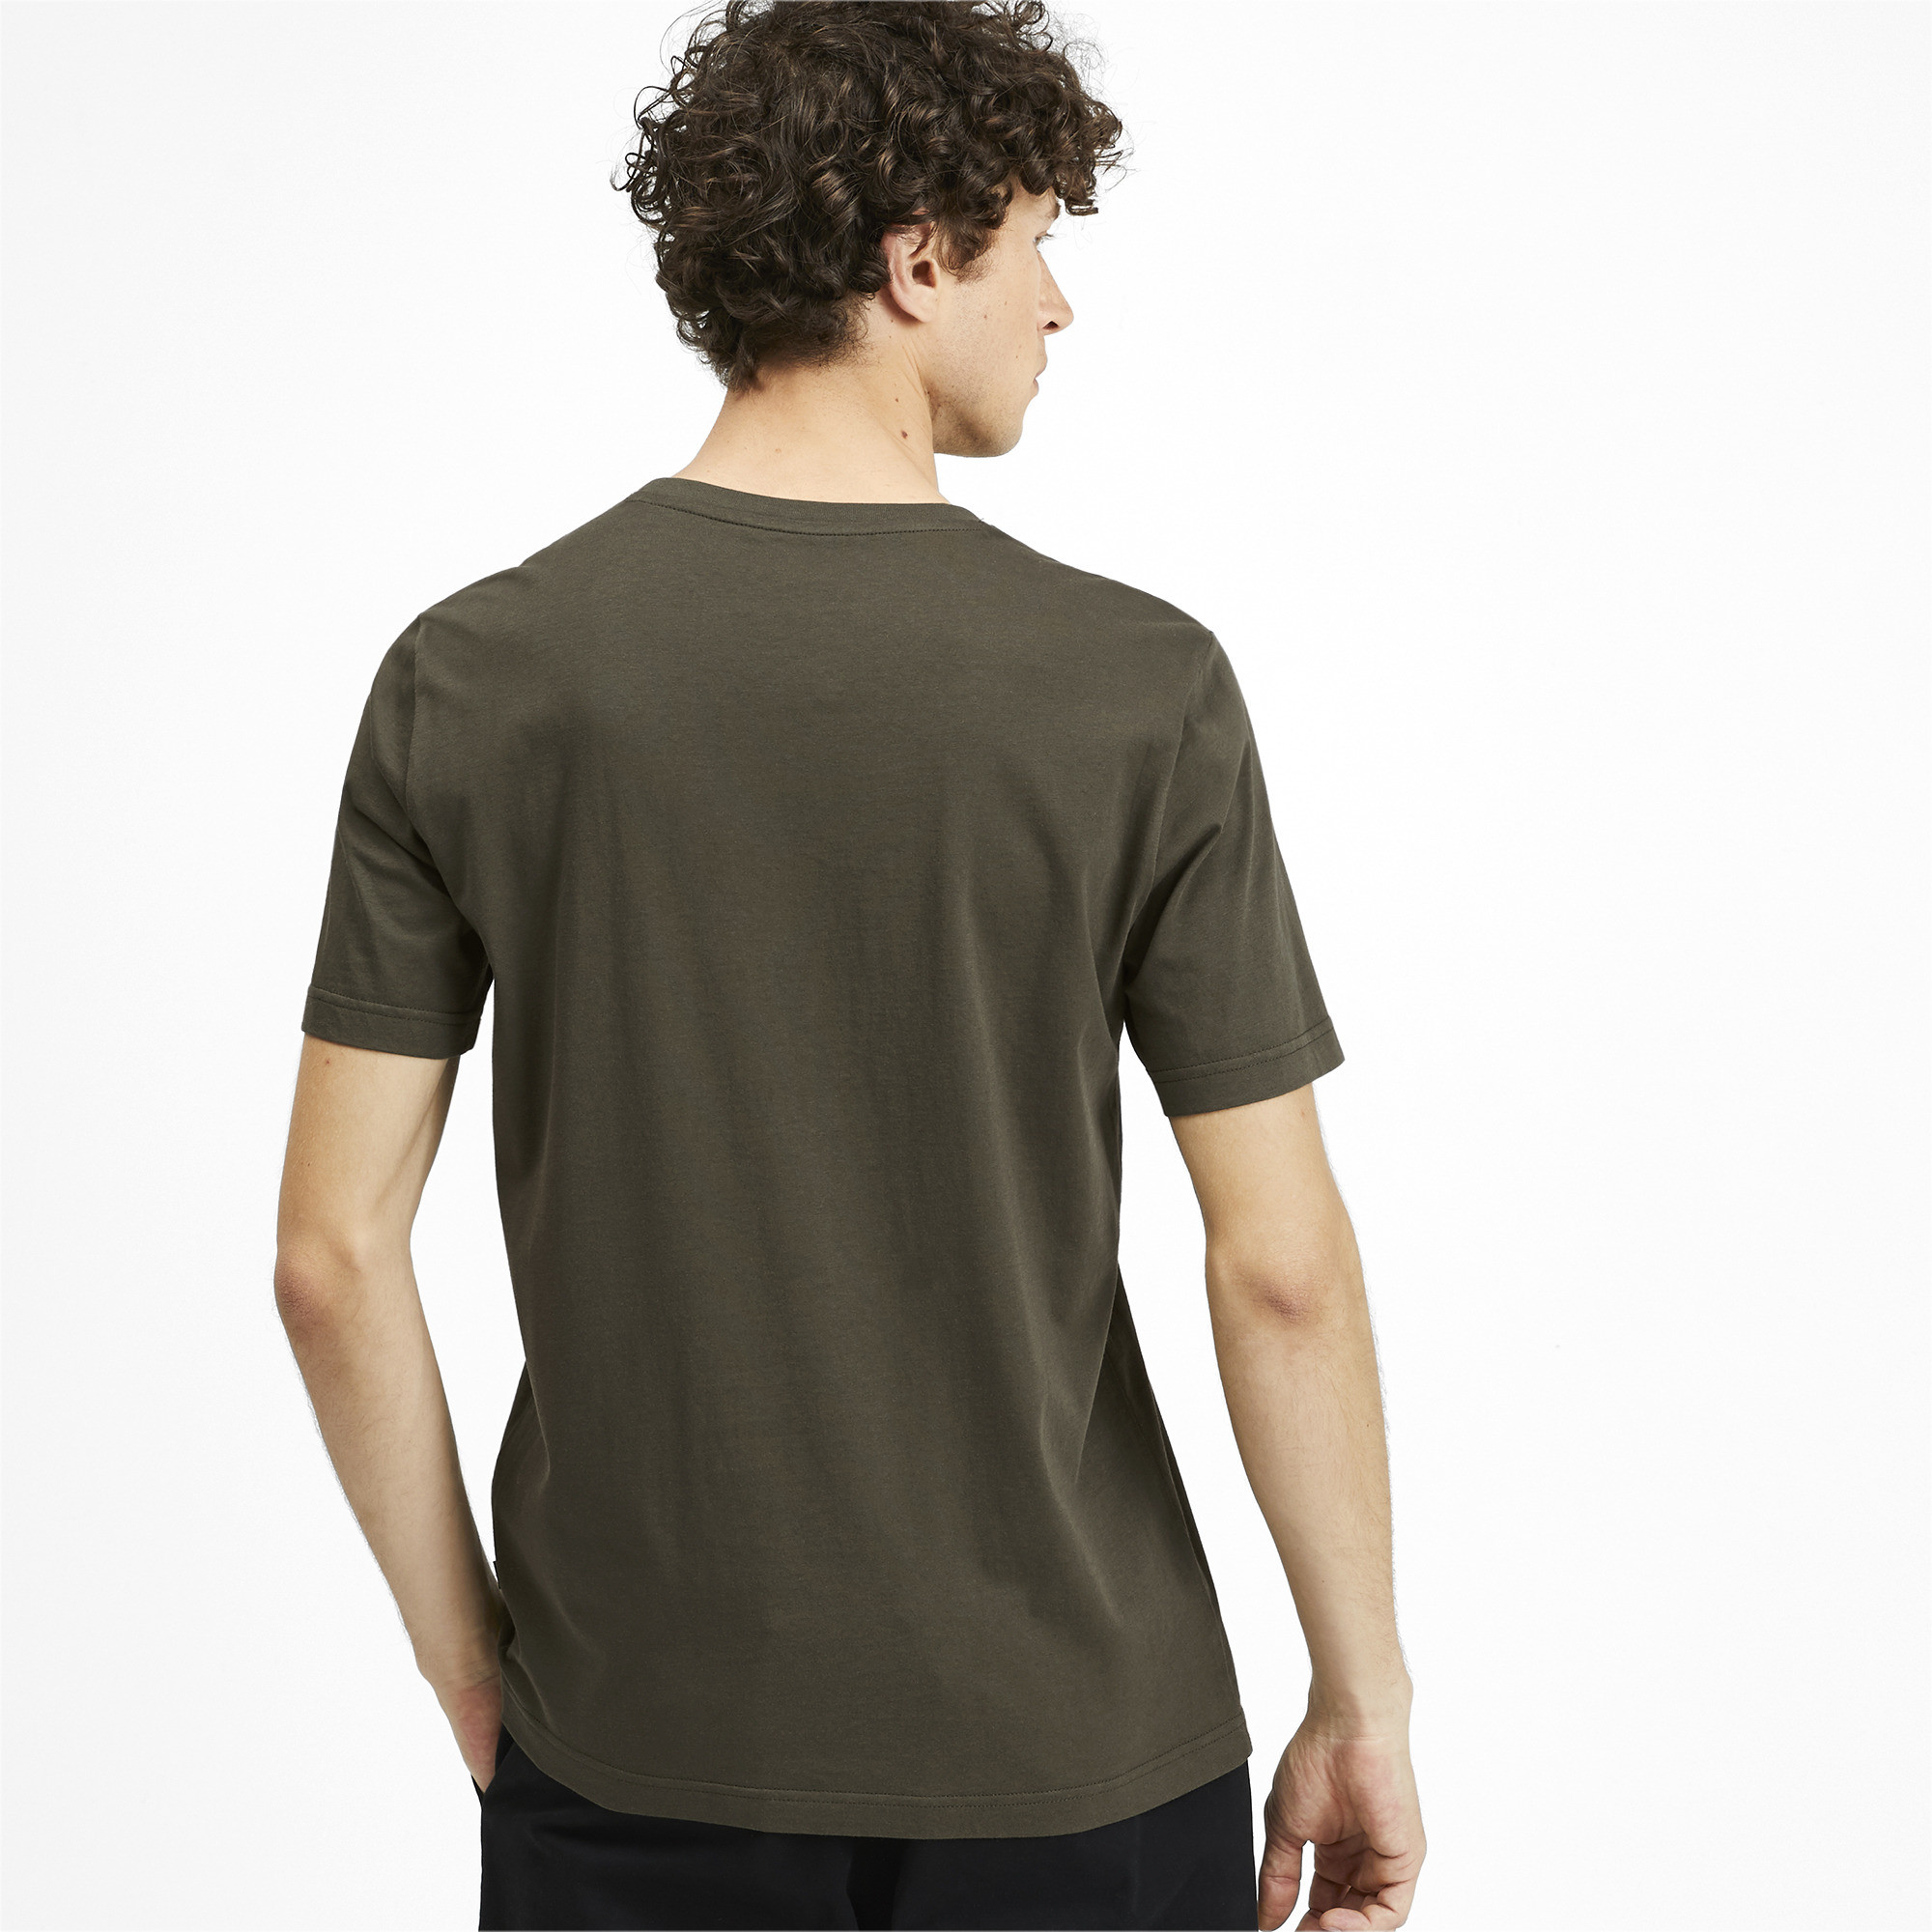 PUMA-Rebel-Camo-Filled-Men-039-s-Tee-Men-Tee-Basics thumbnail 10